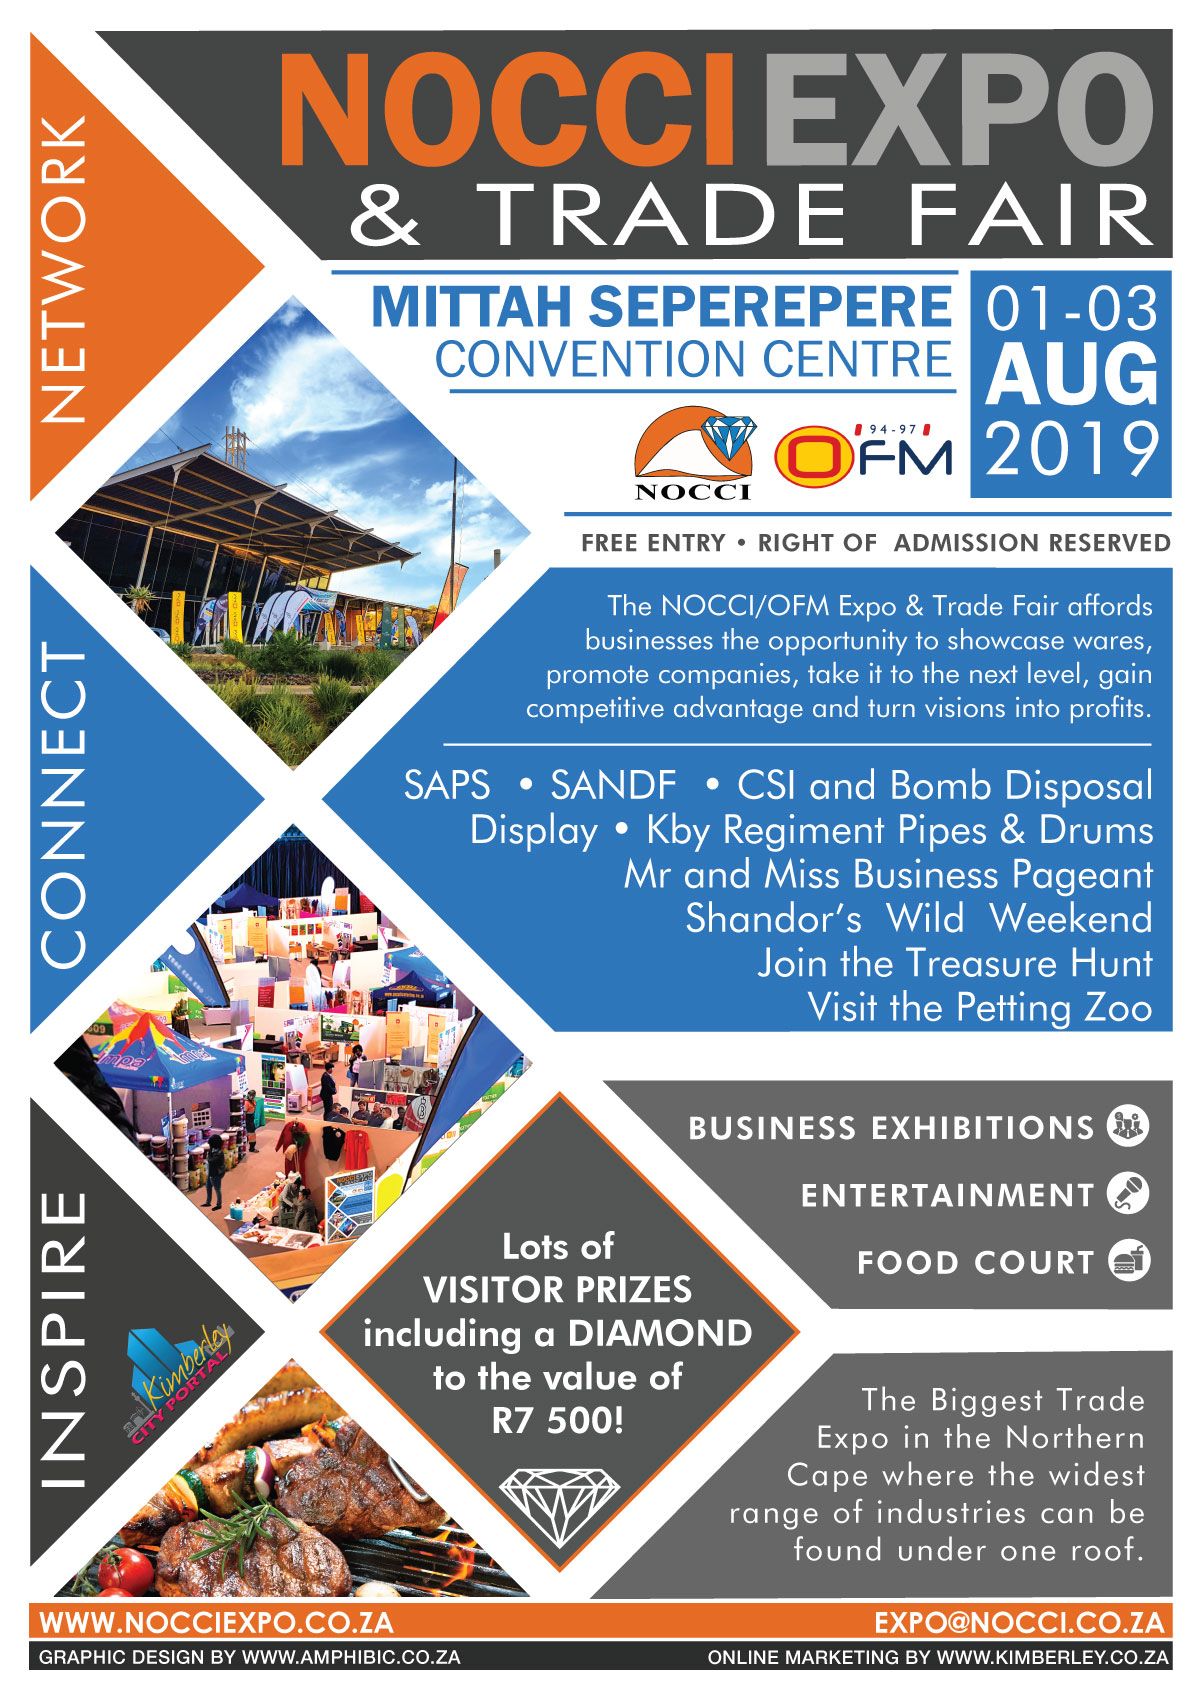 The 2019 OFM NOCCI Expo and Traide Fair